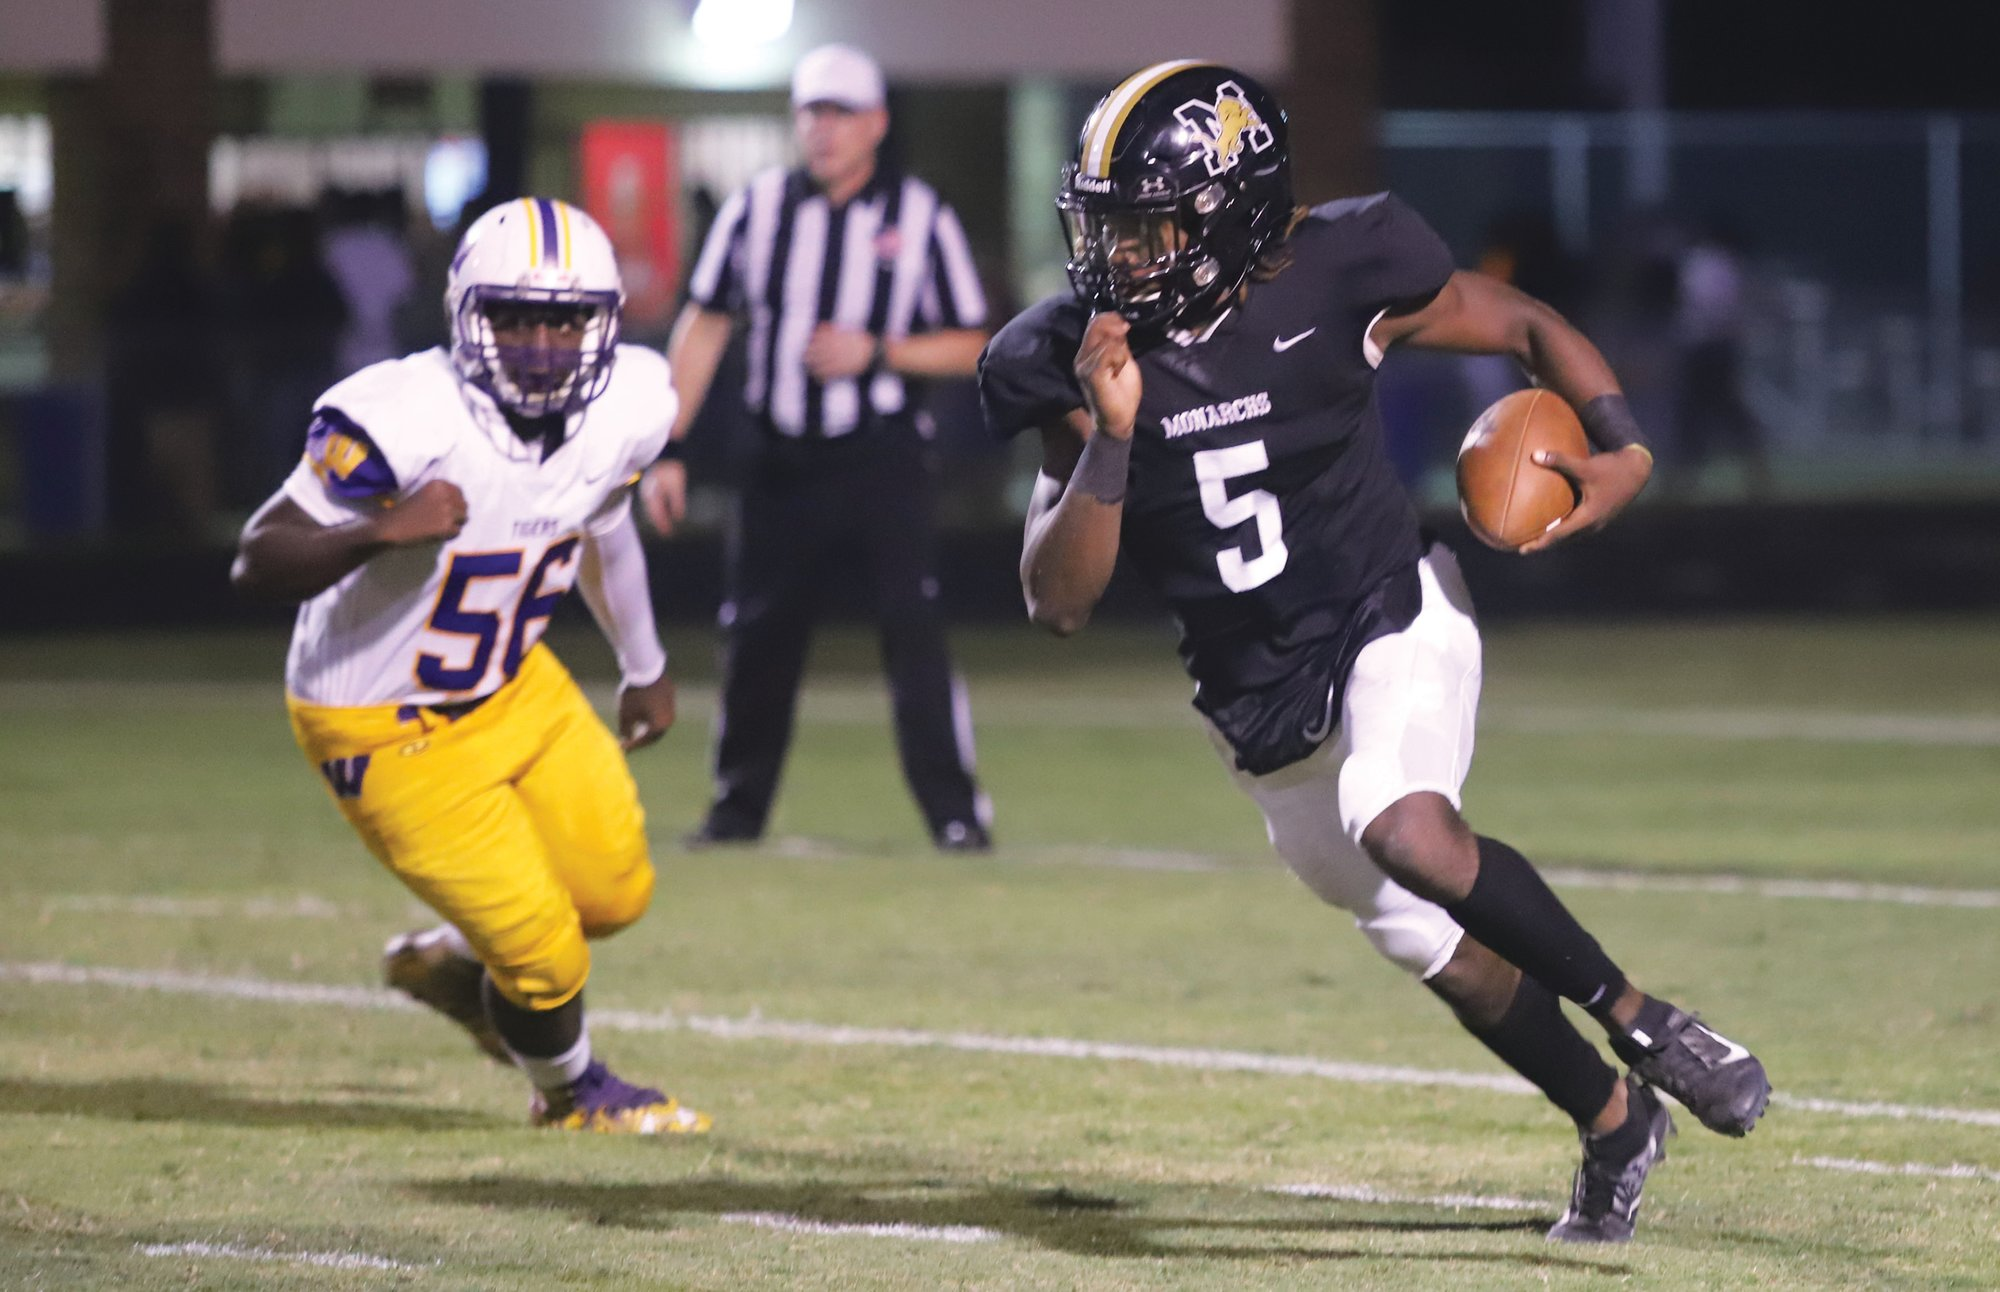 Manning quarterback Corey Graham (5) evades a Wilson defender in the first half of Manning's 35-13 loss to Wilson.